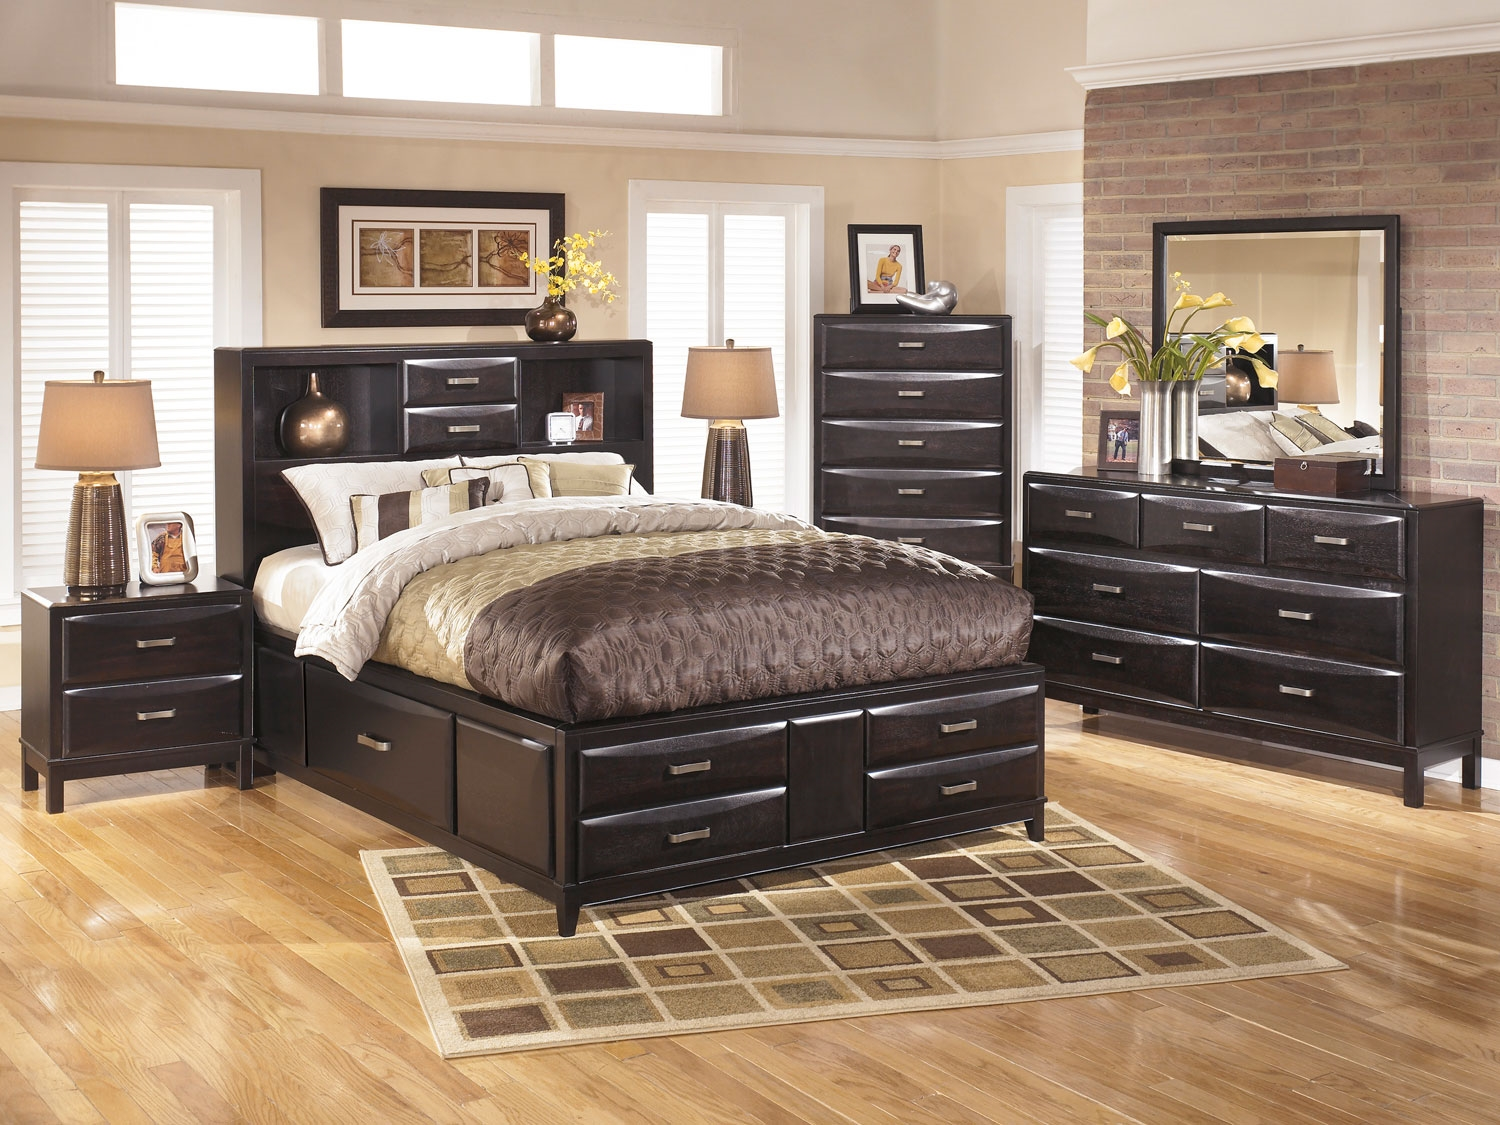 Picture of: Ashley Furniture Bed With Storage Price Ideas